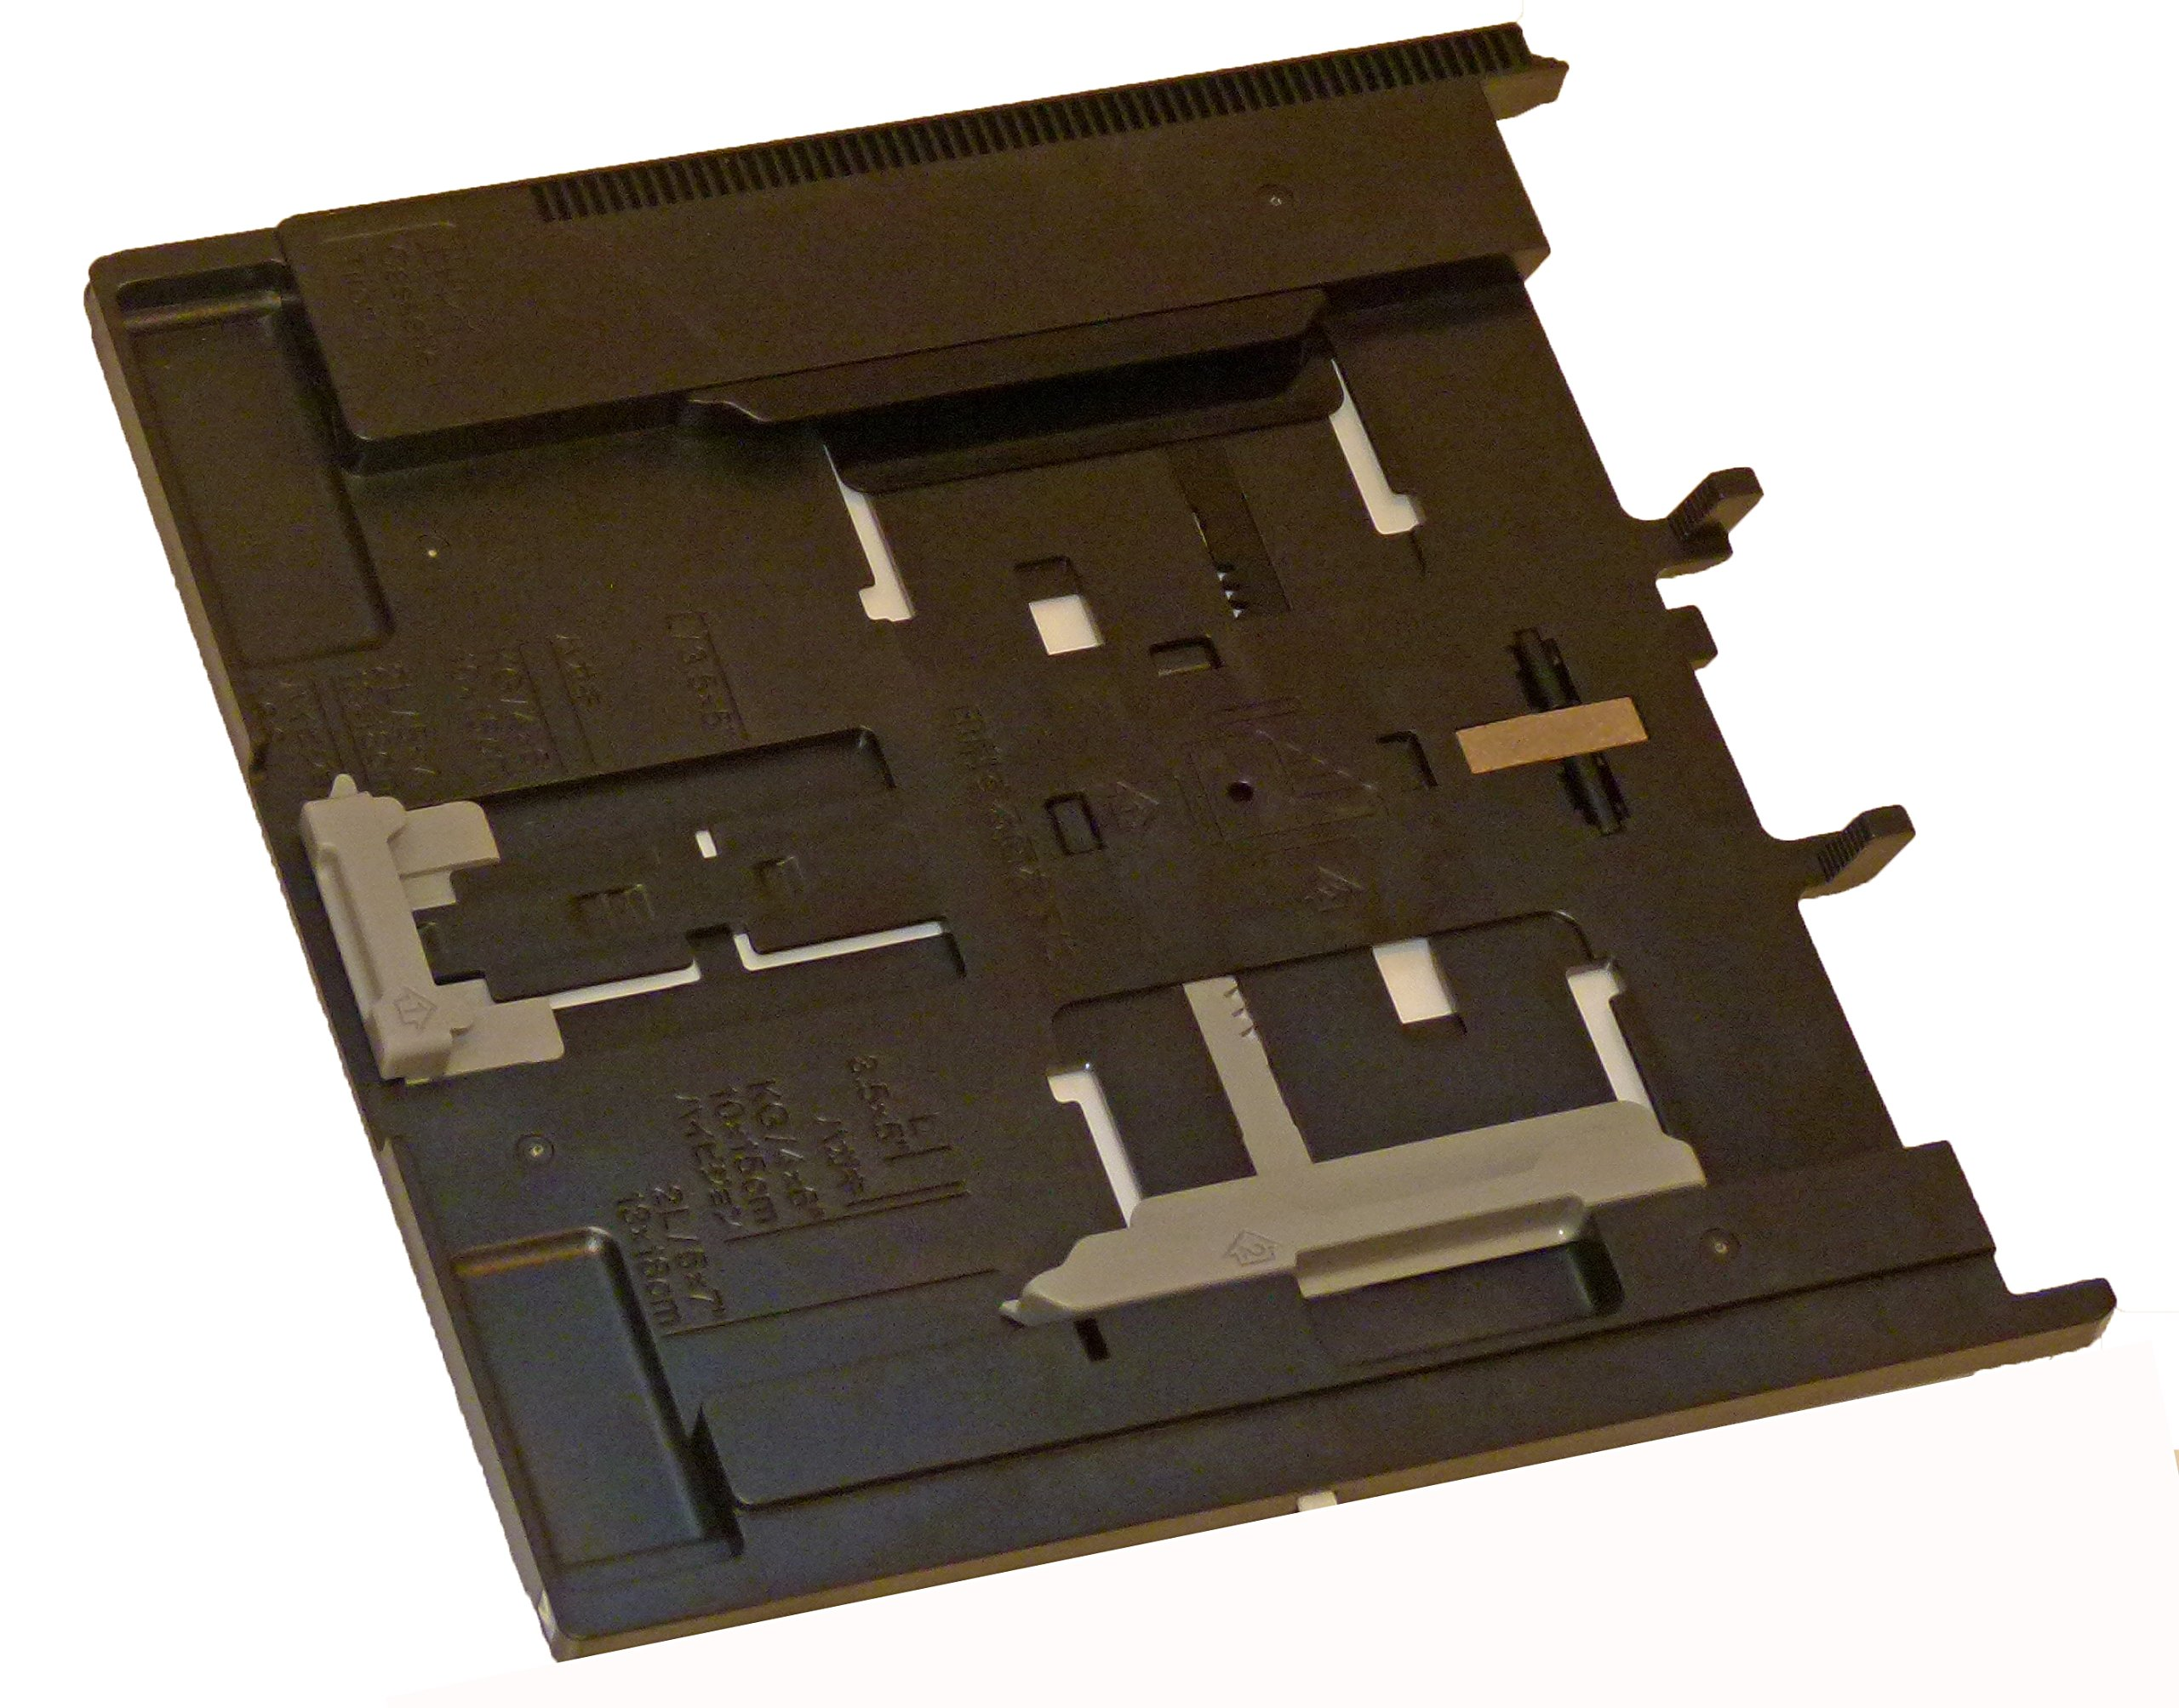 OEM Epson Cassette 1 Photo Paper Tray Assembly Specifically For: XP-760, XP-630, XP-720, XP-830 by Epson (Image #1)